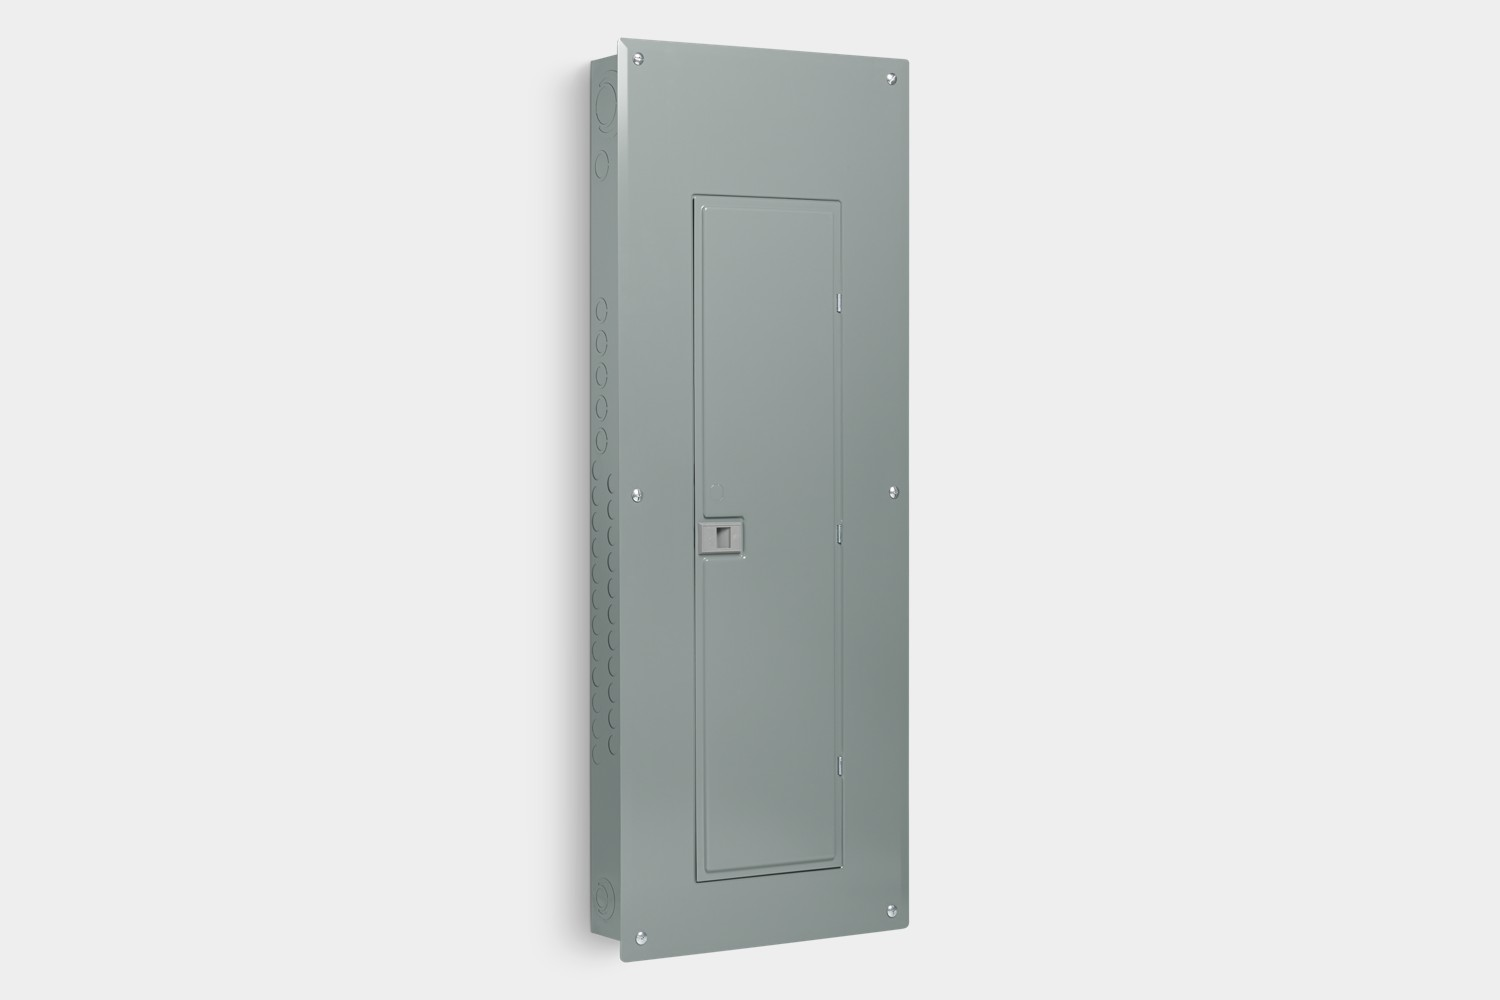 hight resolution of 10 circuit manual transfer switch